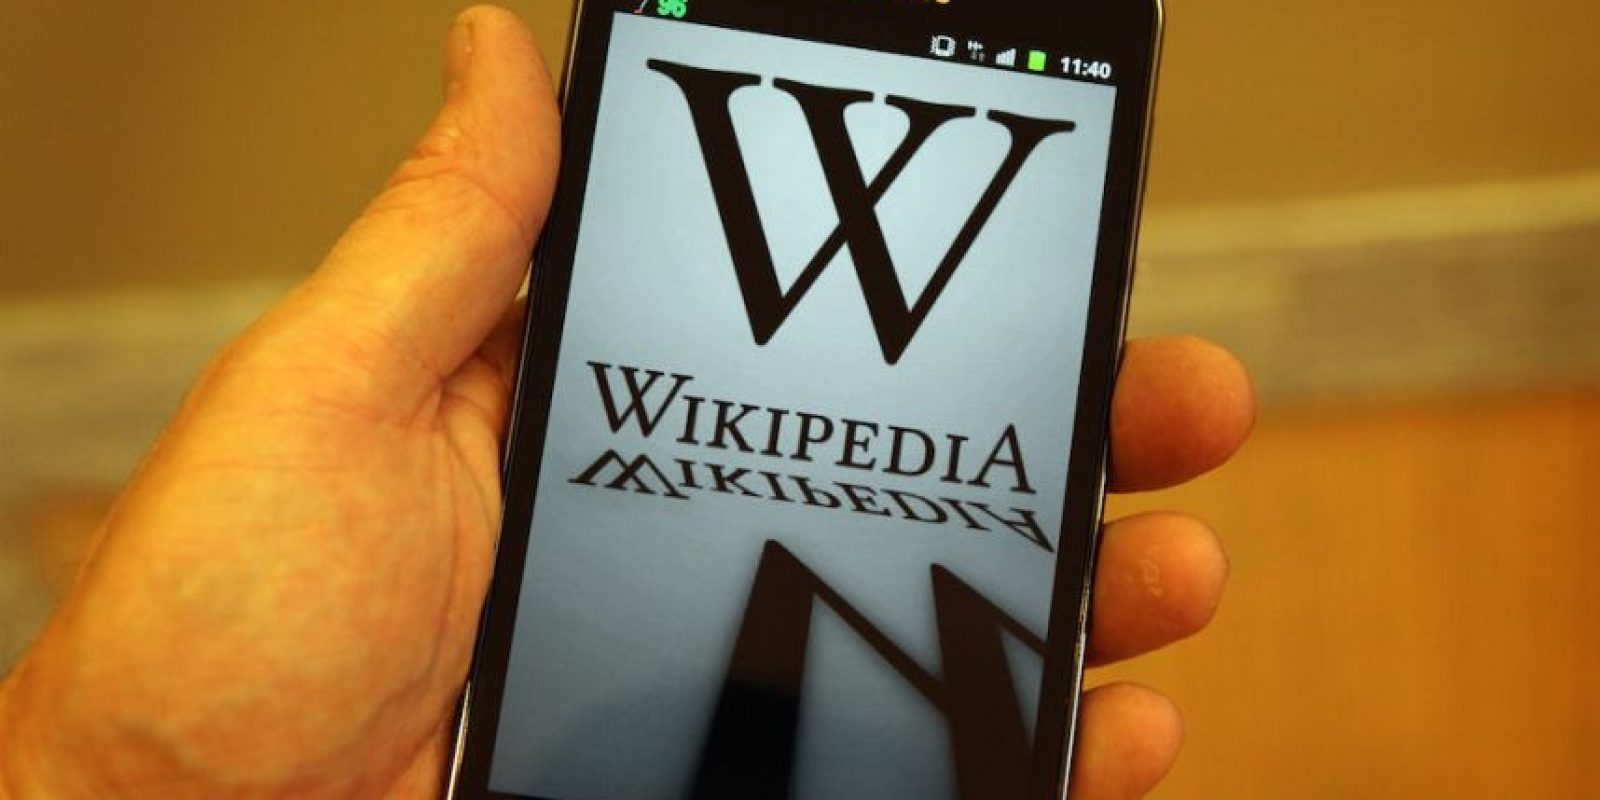 La enciclopedia libre virtual fue iniciada en enero de 2001 por Jimmy Wales y Larry Sanger. Foto: Getty Images